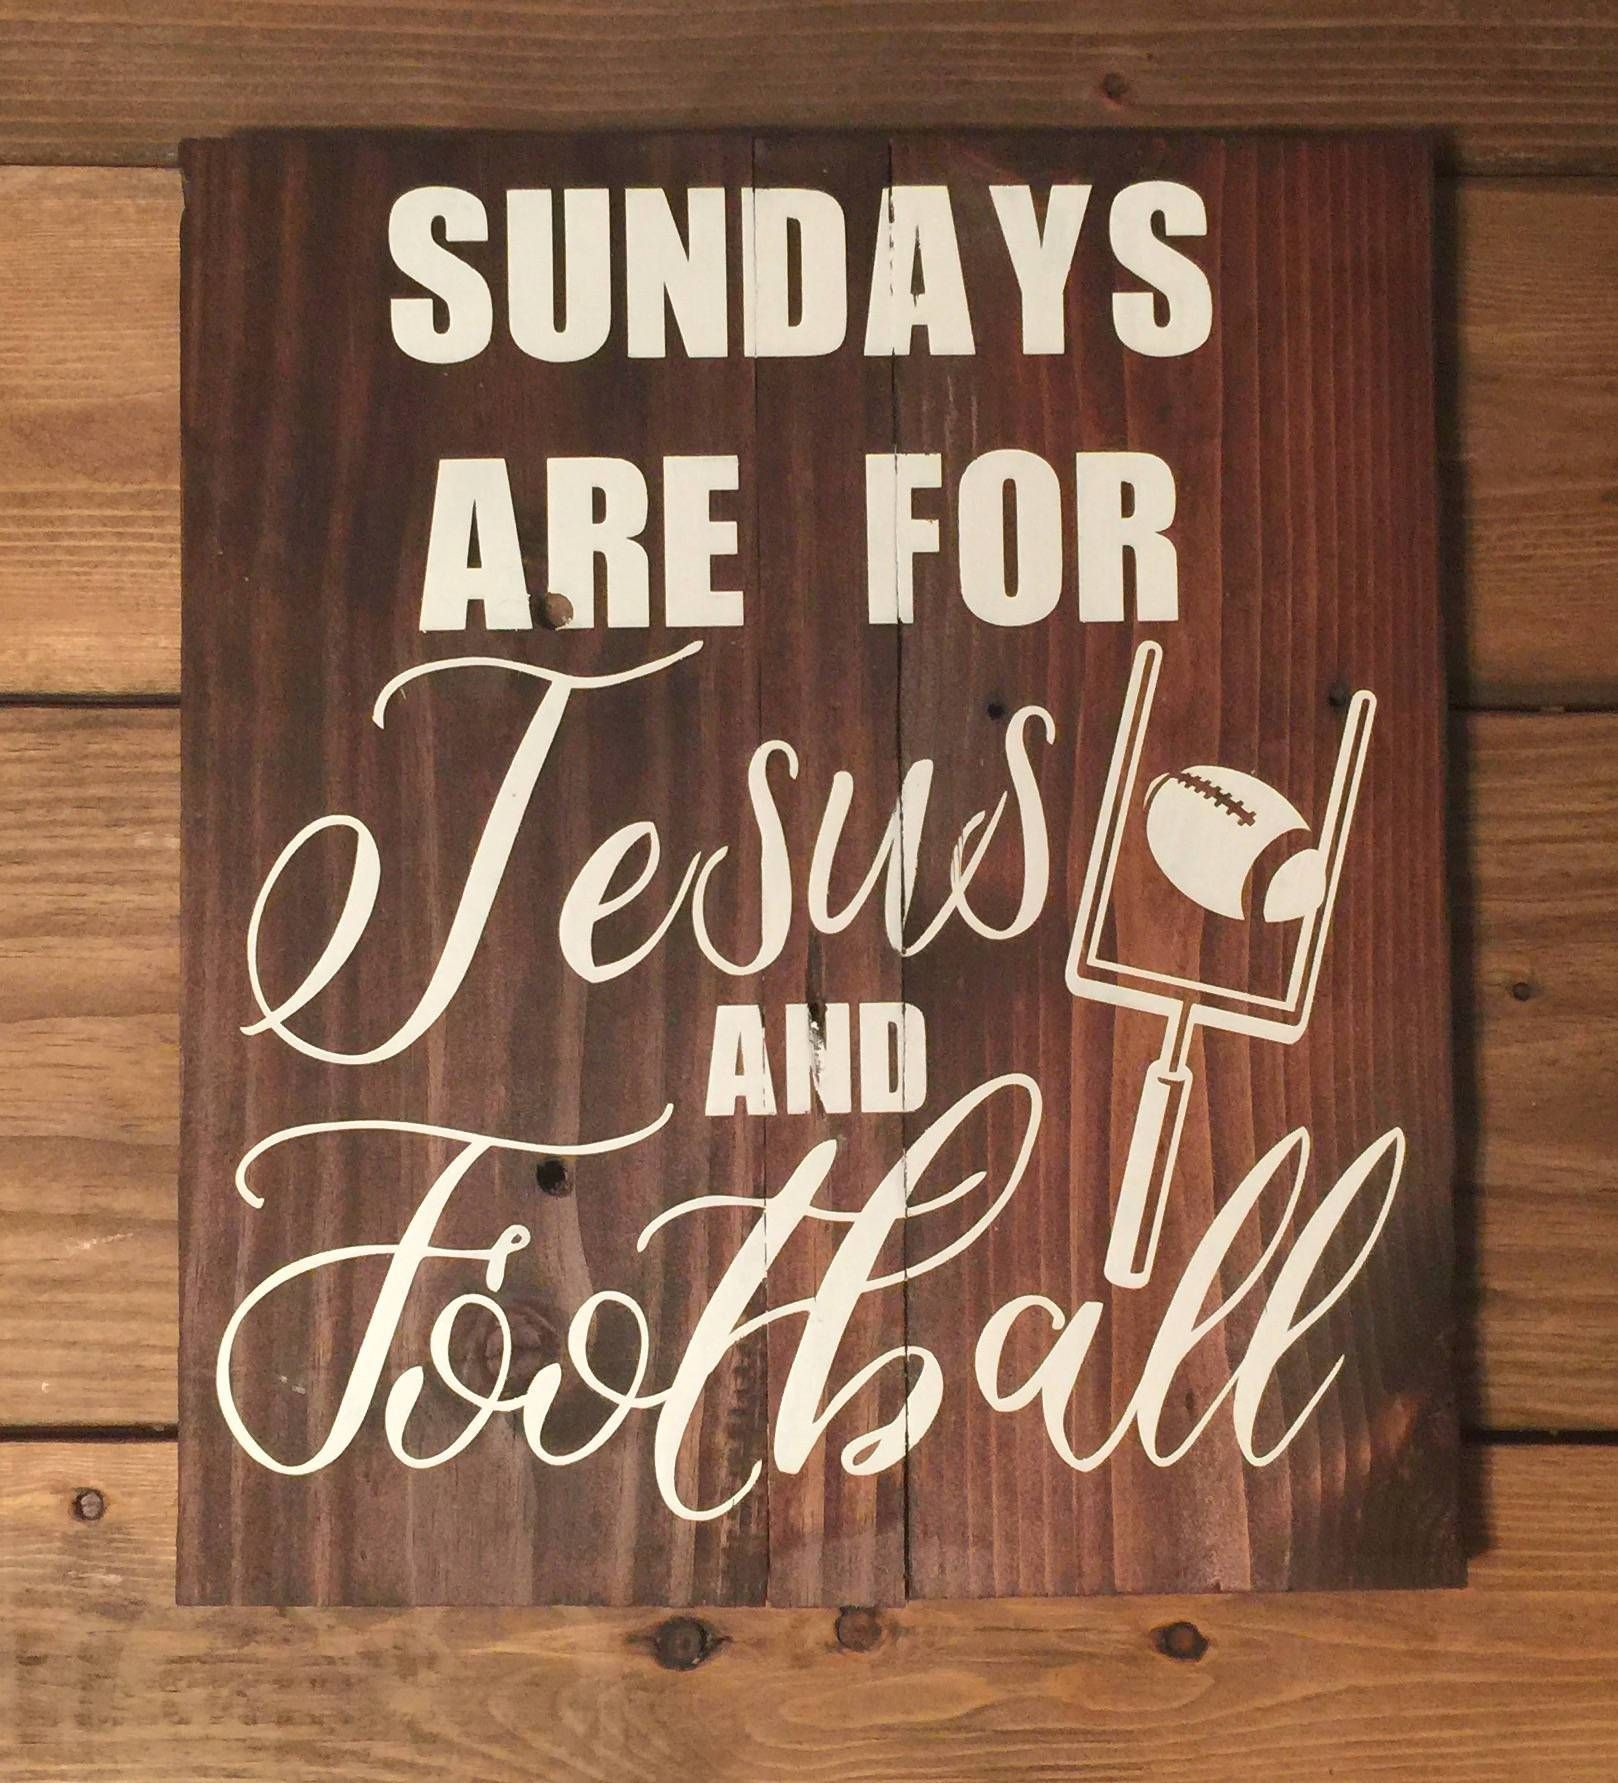 Sundays Are For Jesus And Football Wood Sign Measures 12 X14 Hand Painted No Vinyl Sticker Sundays Are For Jesus And Football Wood Signs Barn Board Crafts